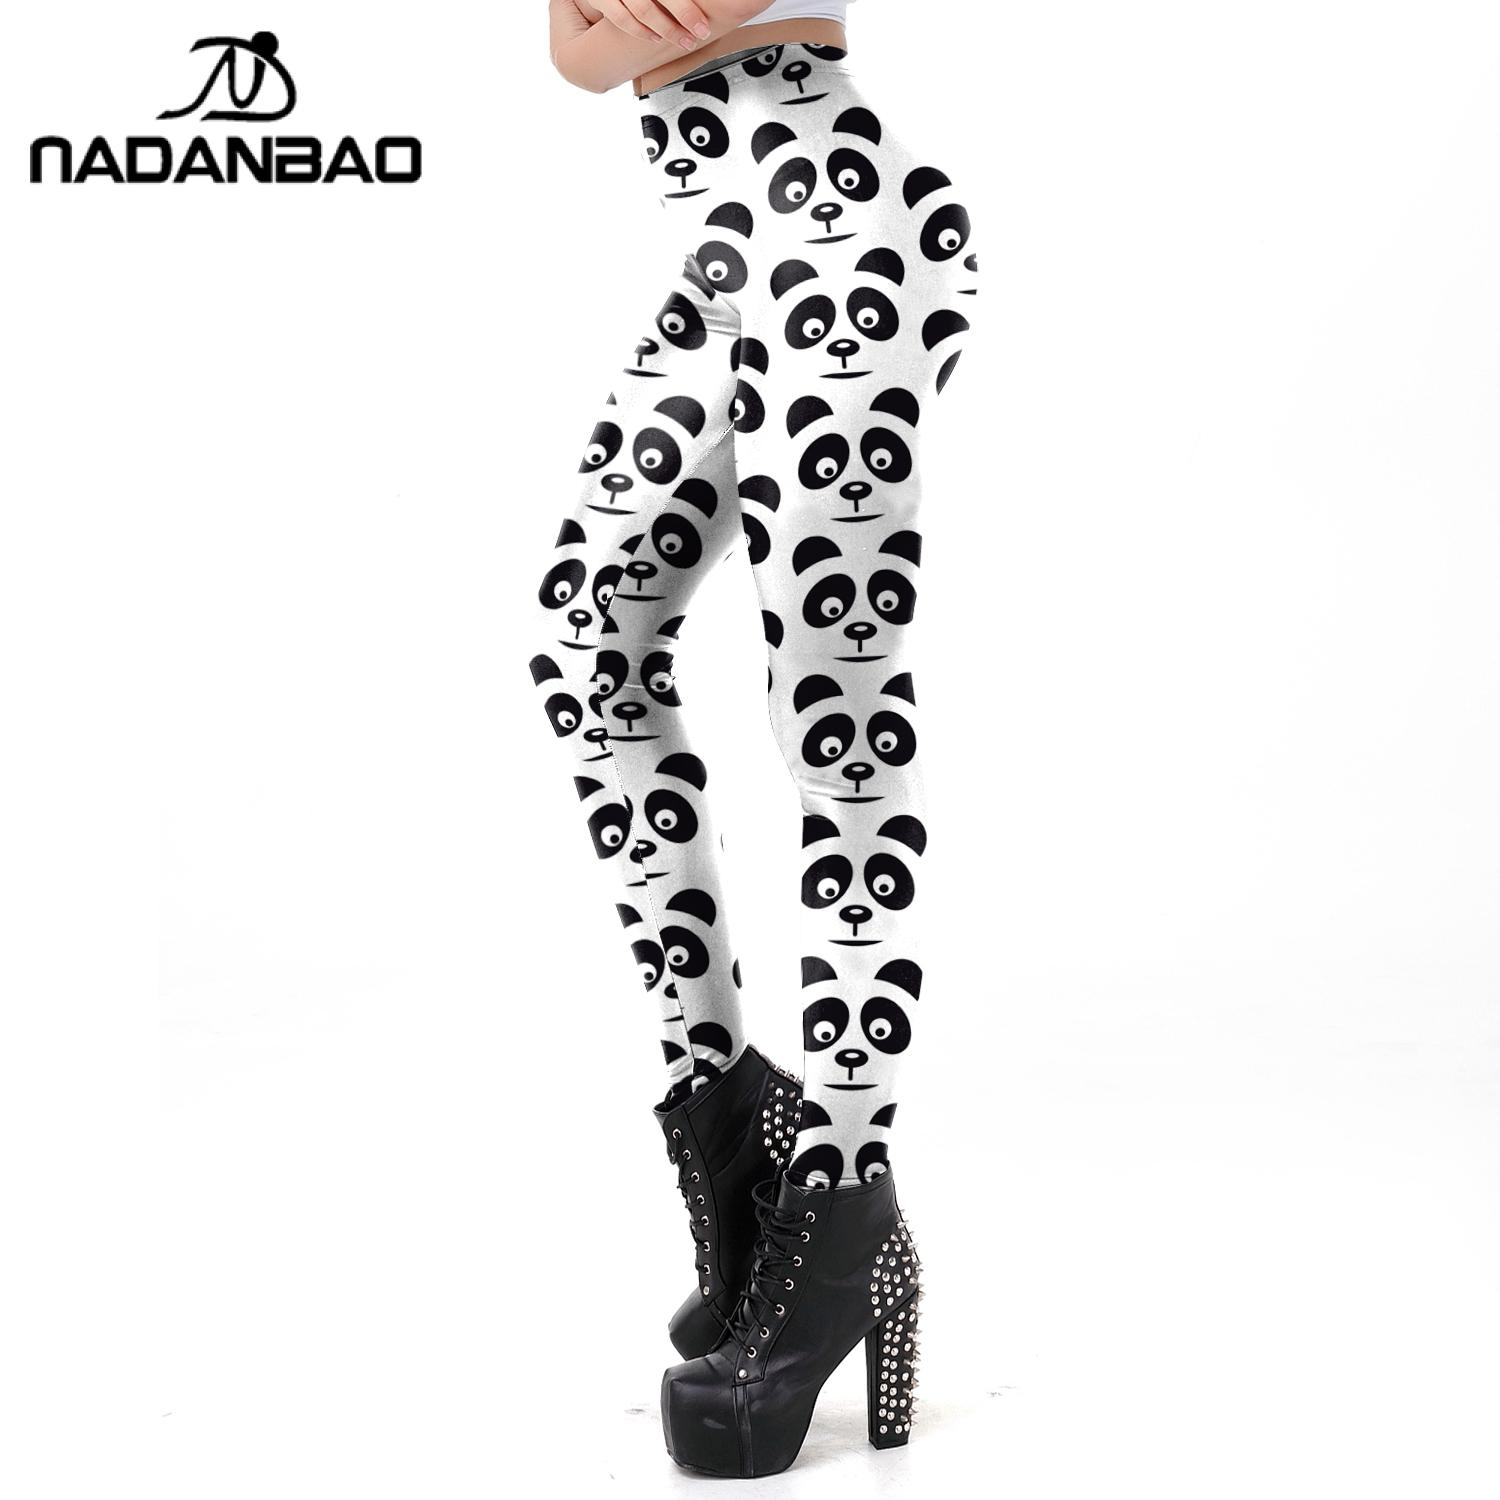 NADANBAO Black White Panda Women Leggings Fashion Cute Printed Workout Pants Slim Elastic Mid Waist Leggin Fitness Pants